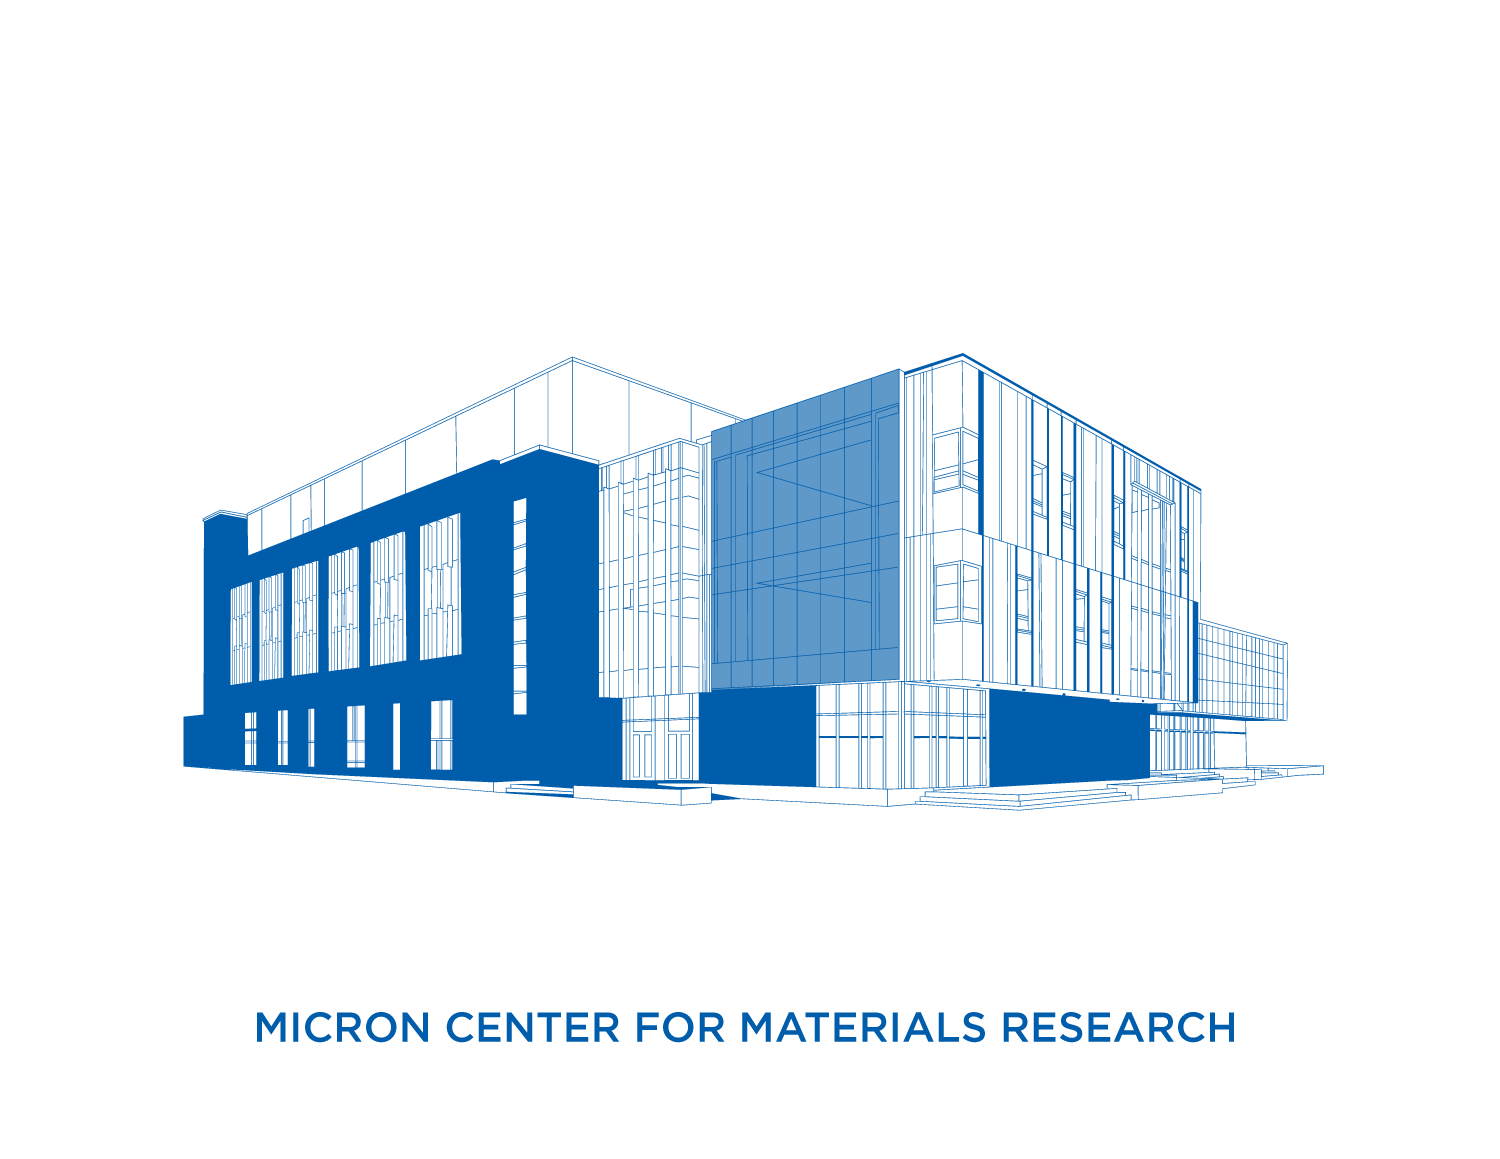 Center for Materials Research Rendering